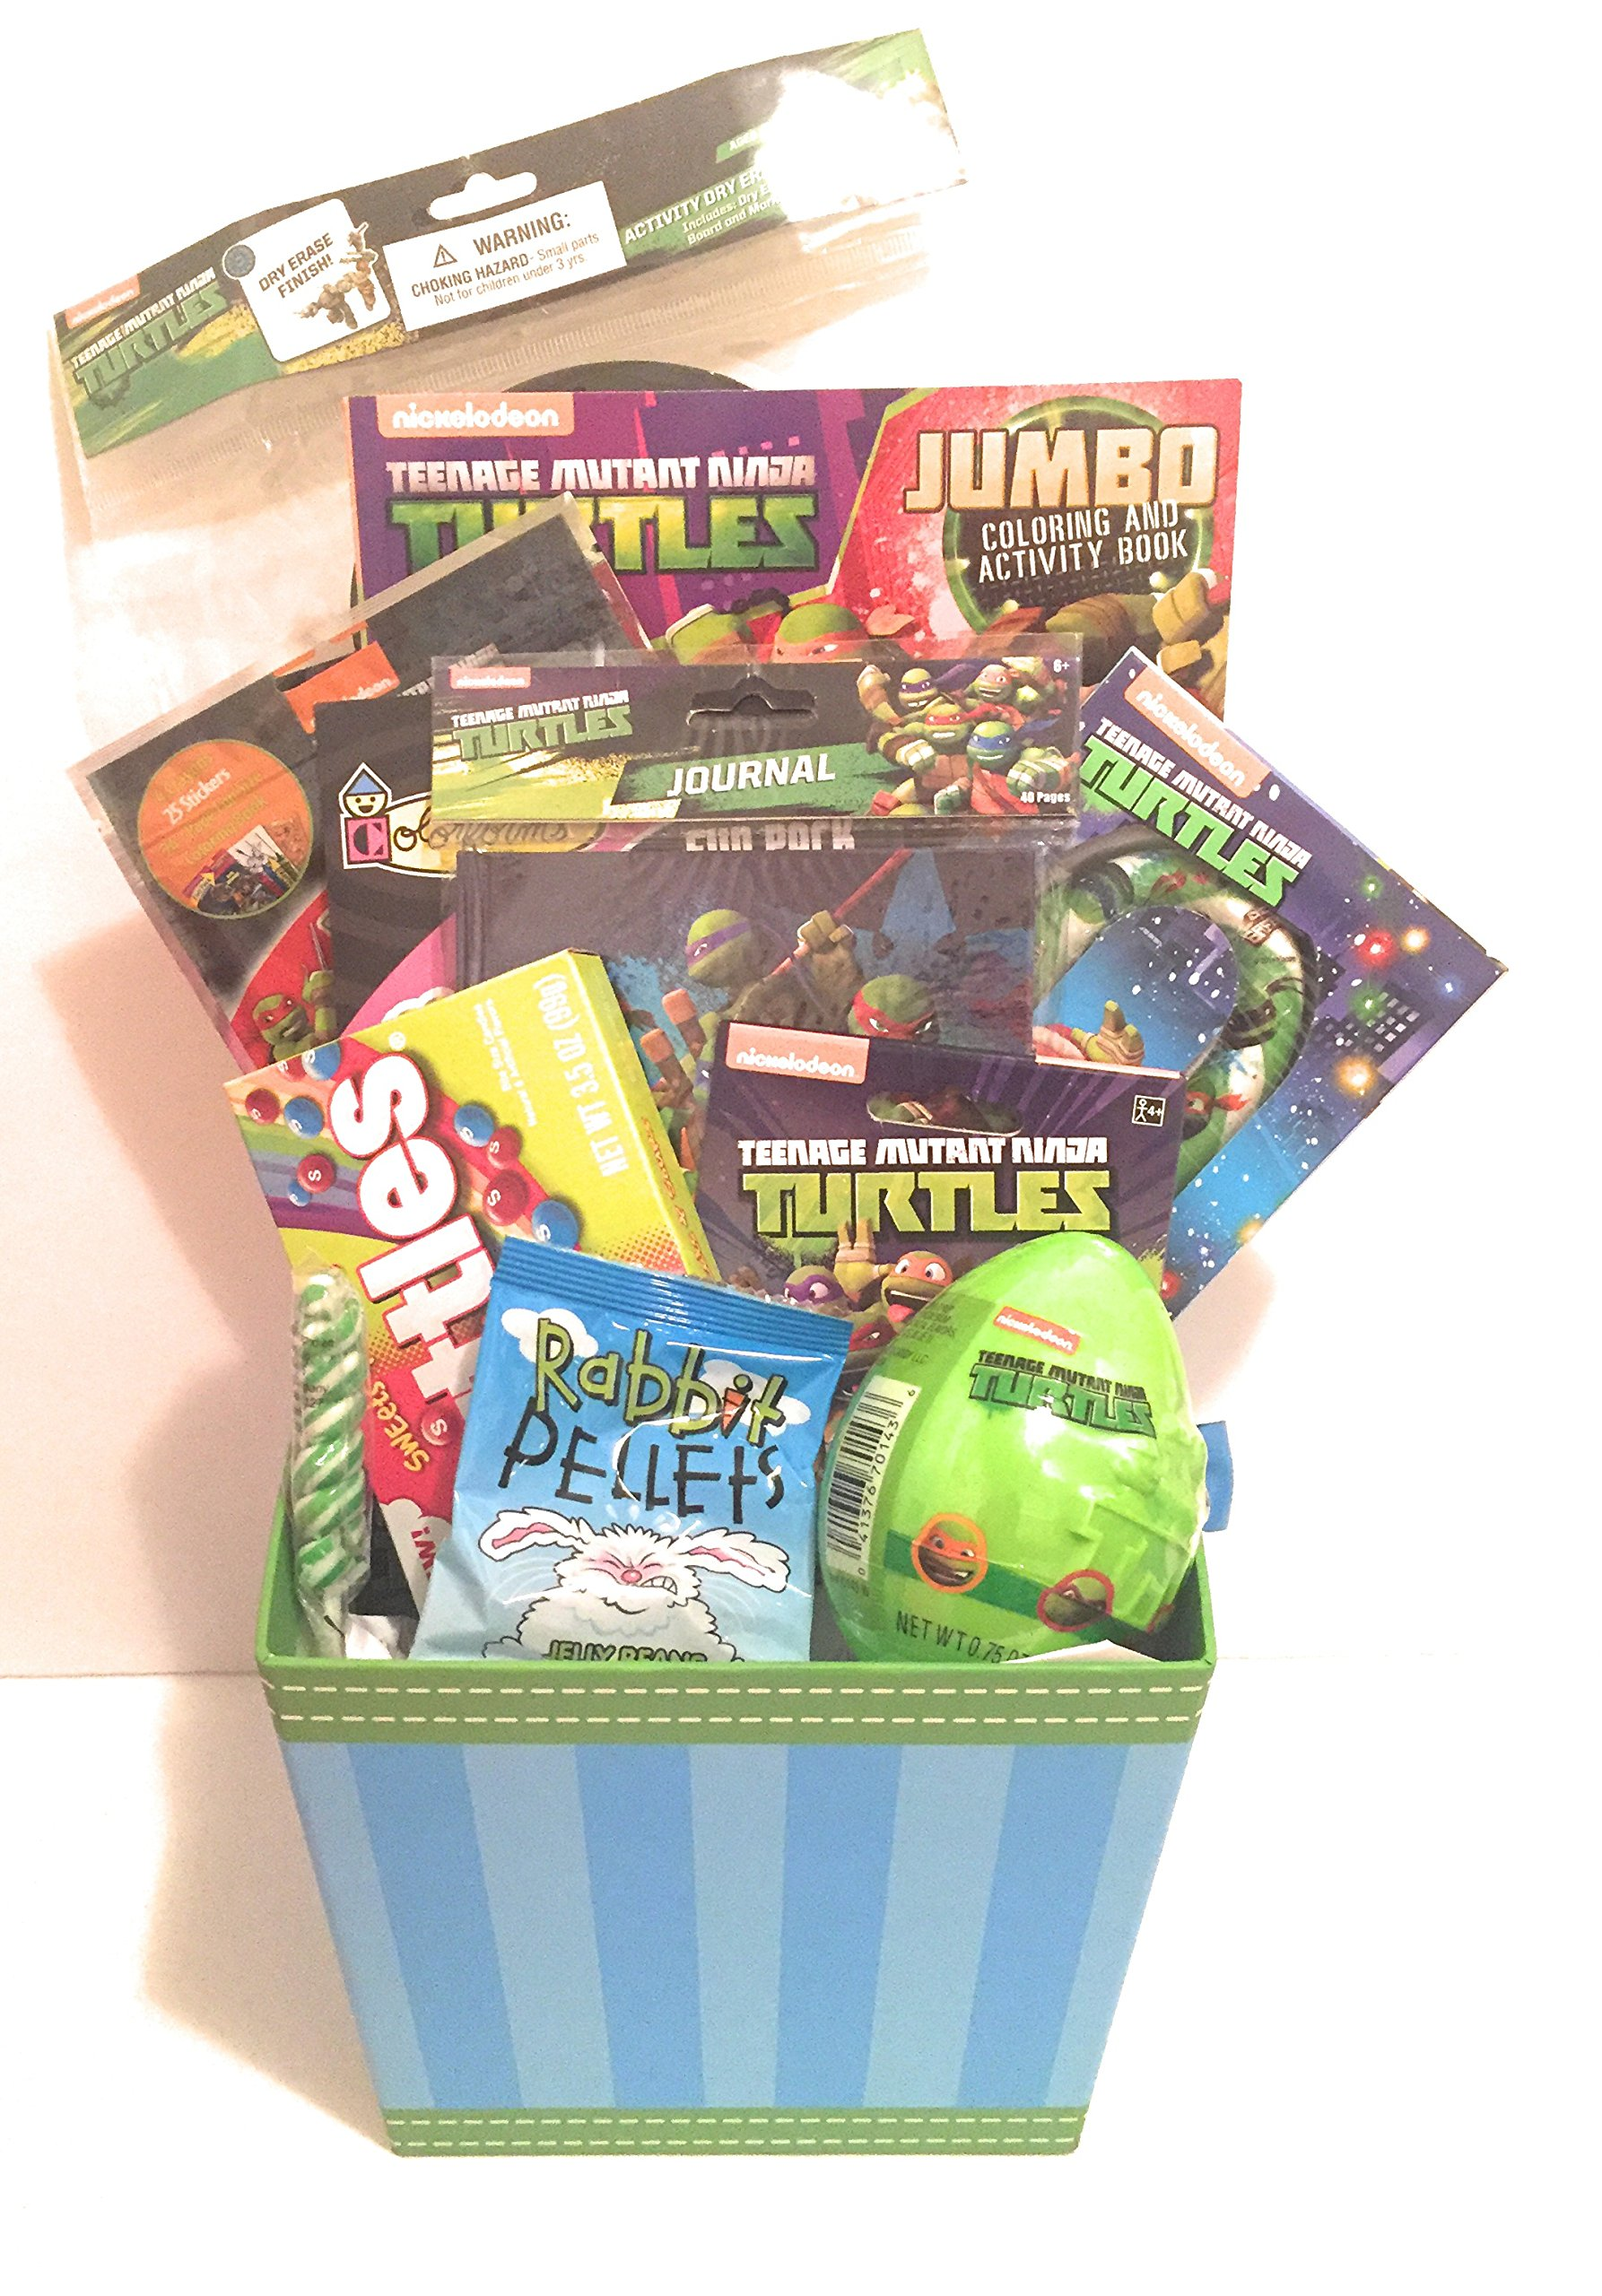 Nickelodeon Teenage Mutant Ninja Turtles Easter Holiday Gift Basket or Birthday Basket - Journal, Play&GoPack, Candy,Stickers,Coloring Book - 12 pieces by Greenbrier